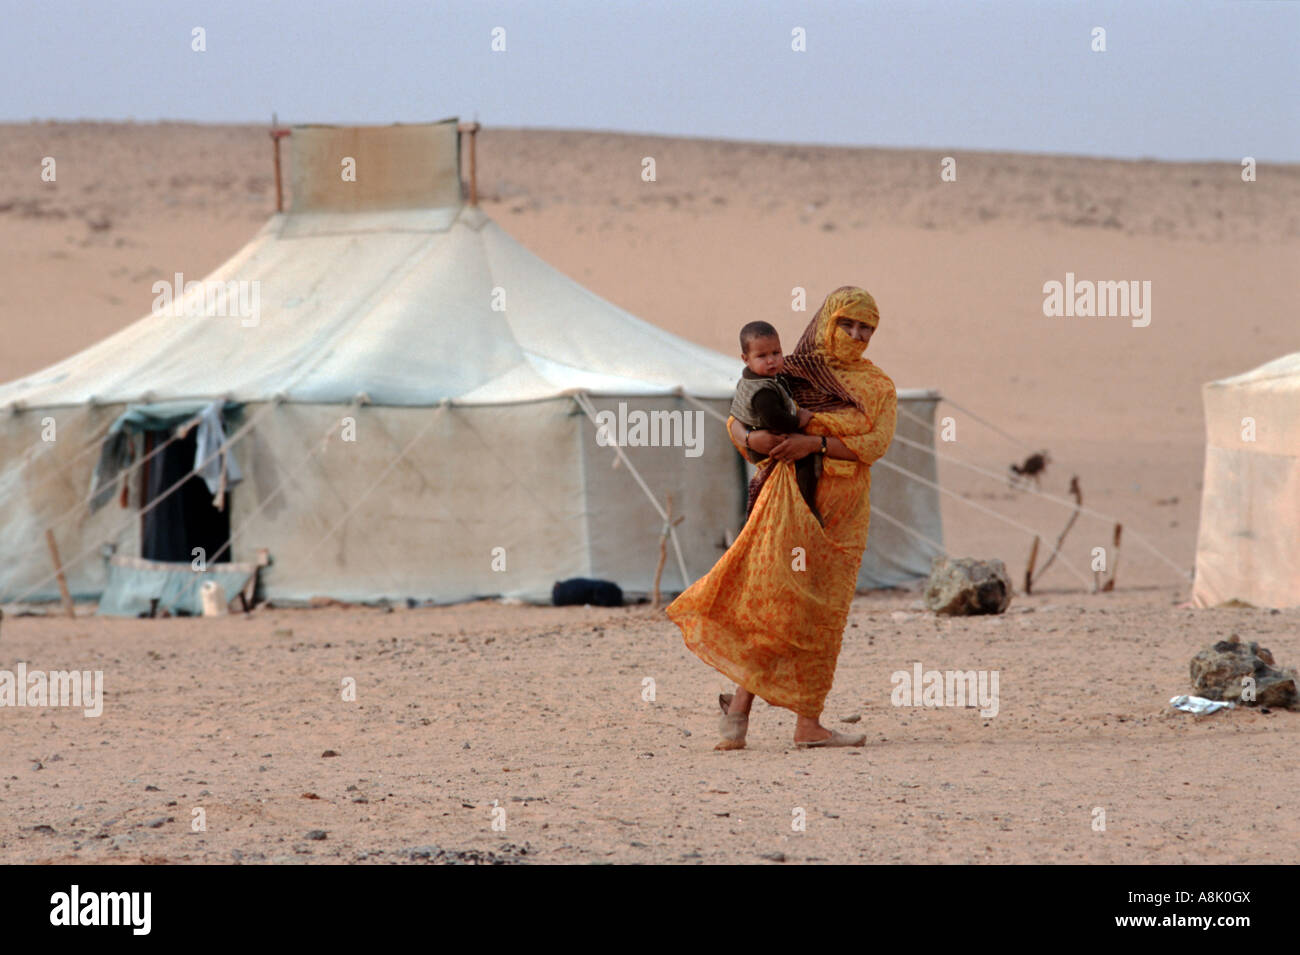 WESTERN SAHARA WOMAN AND CHILD AT POLISARIO SMARA CAMP Photo Julio Etchart - Stock Image